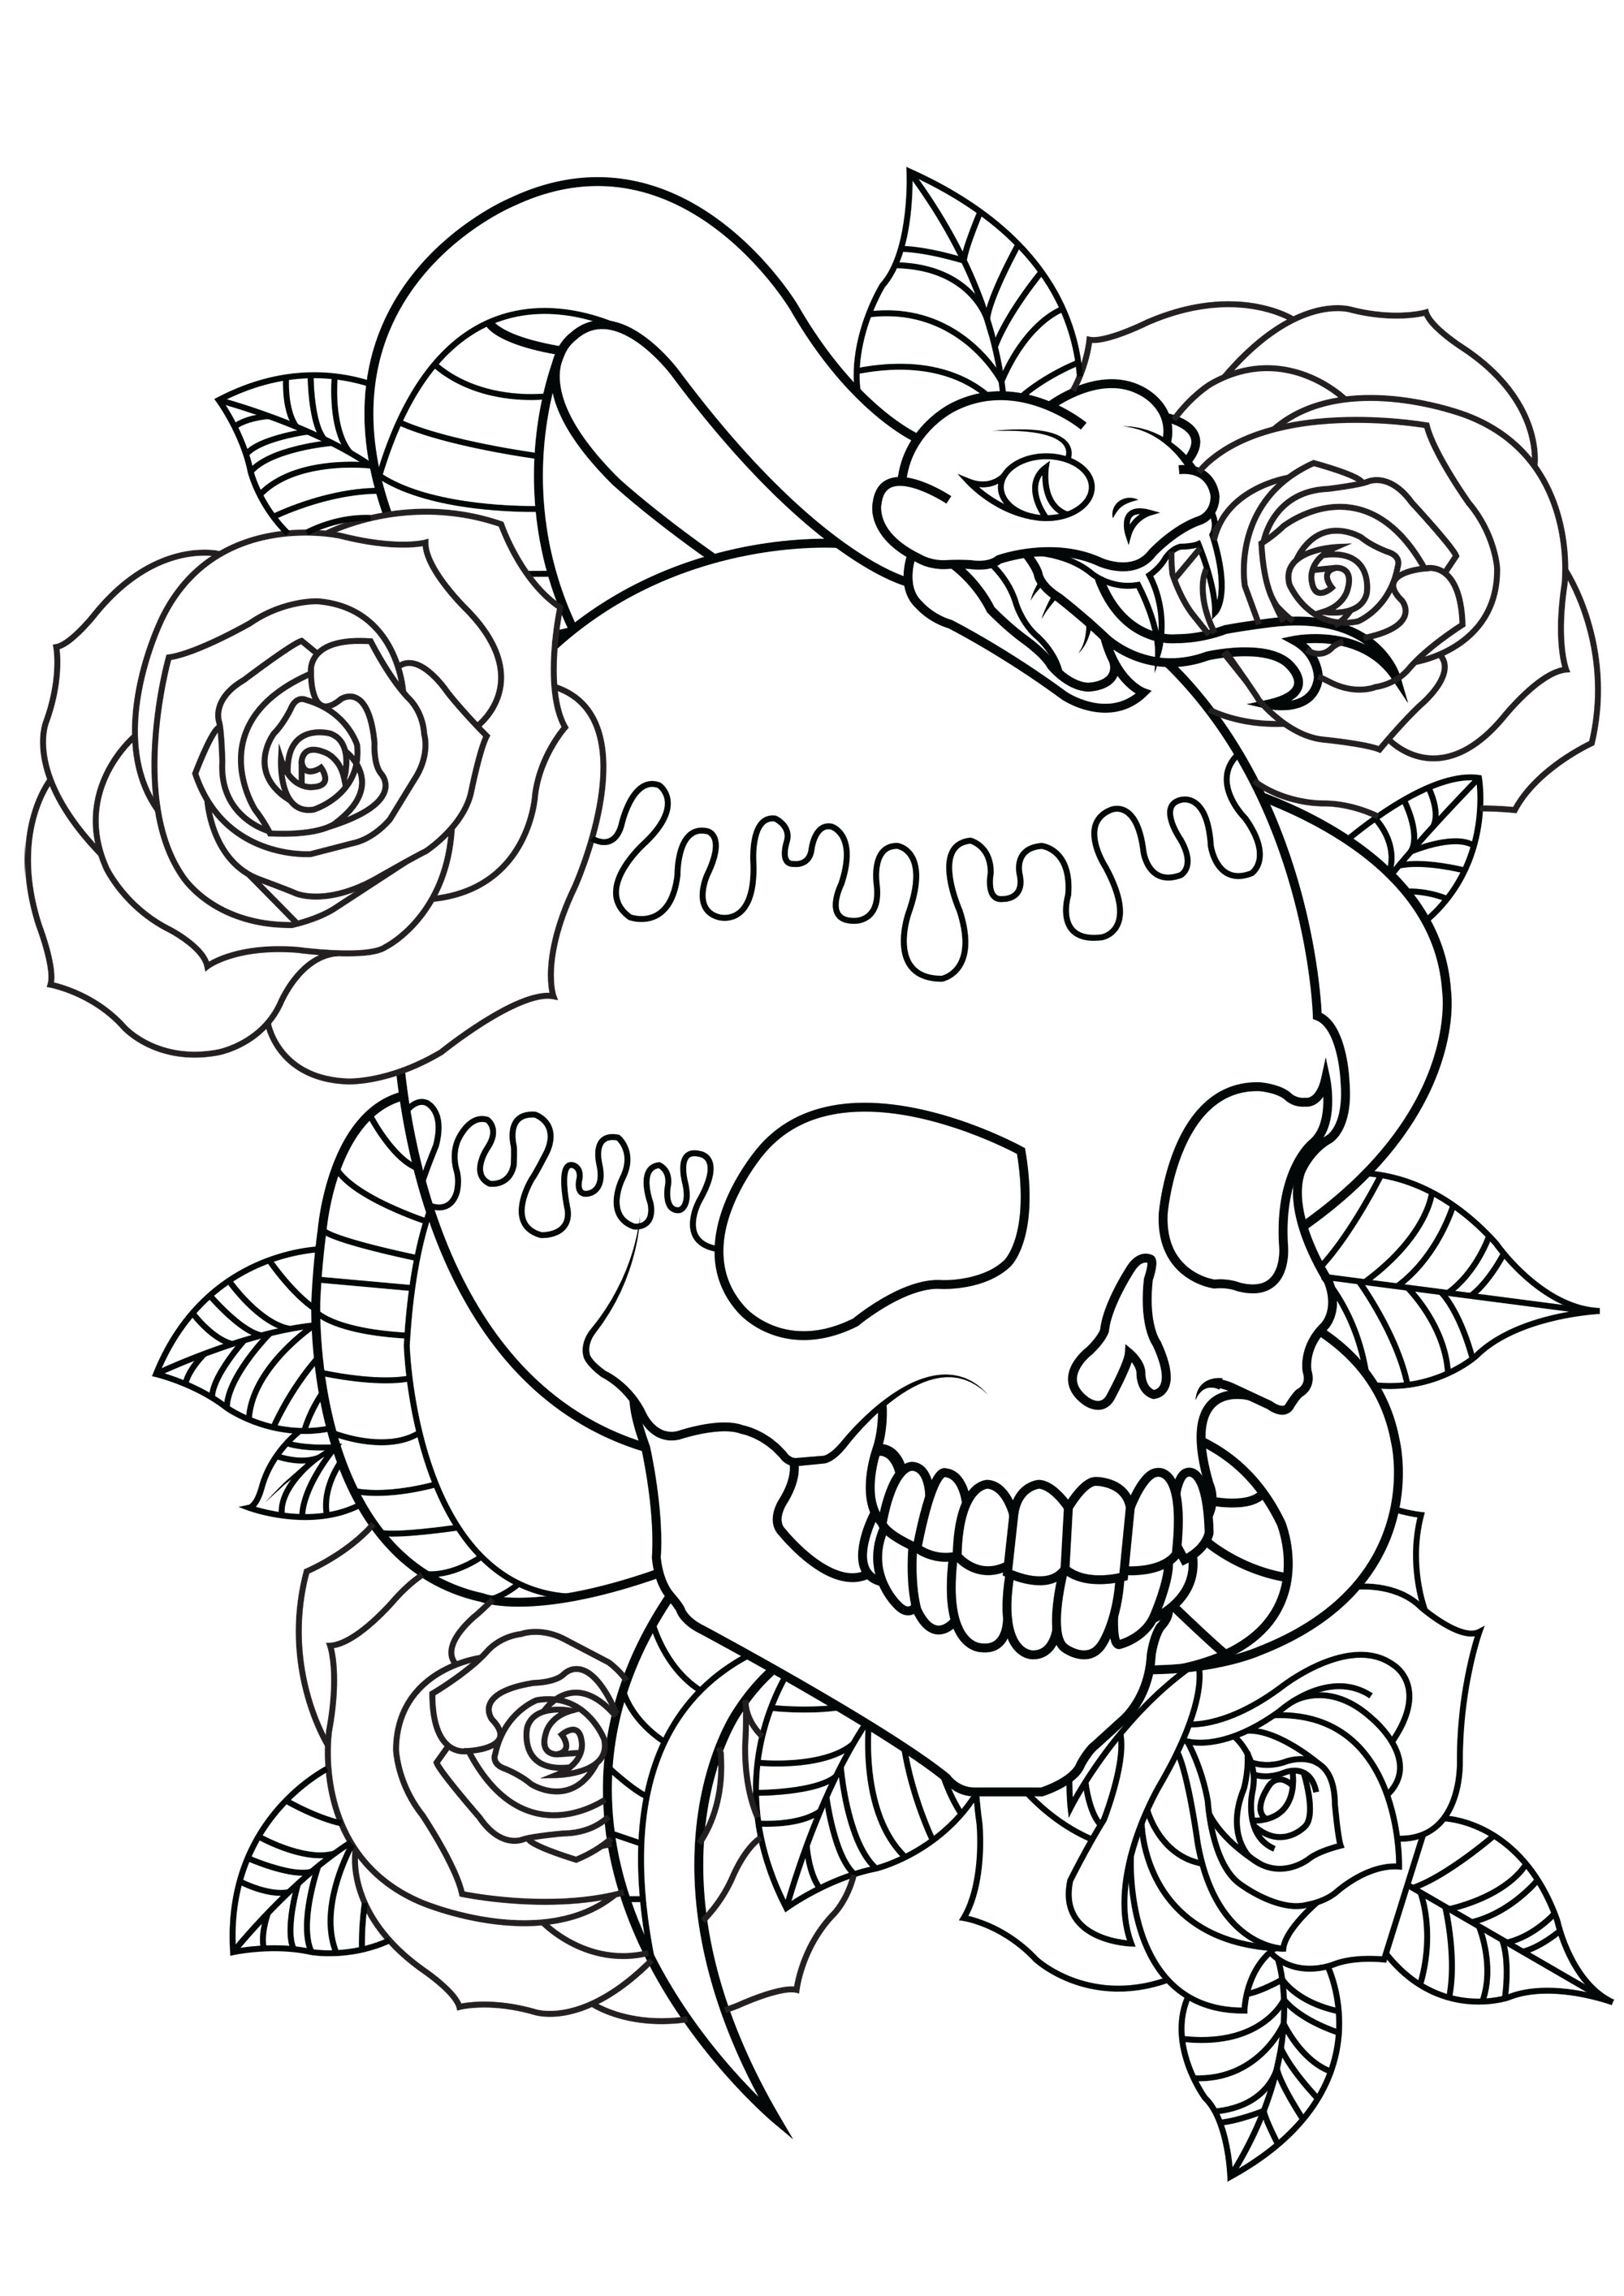 Color with tattoo containing a skull, a snake and beautiful roses with leaves